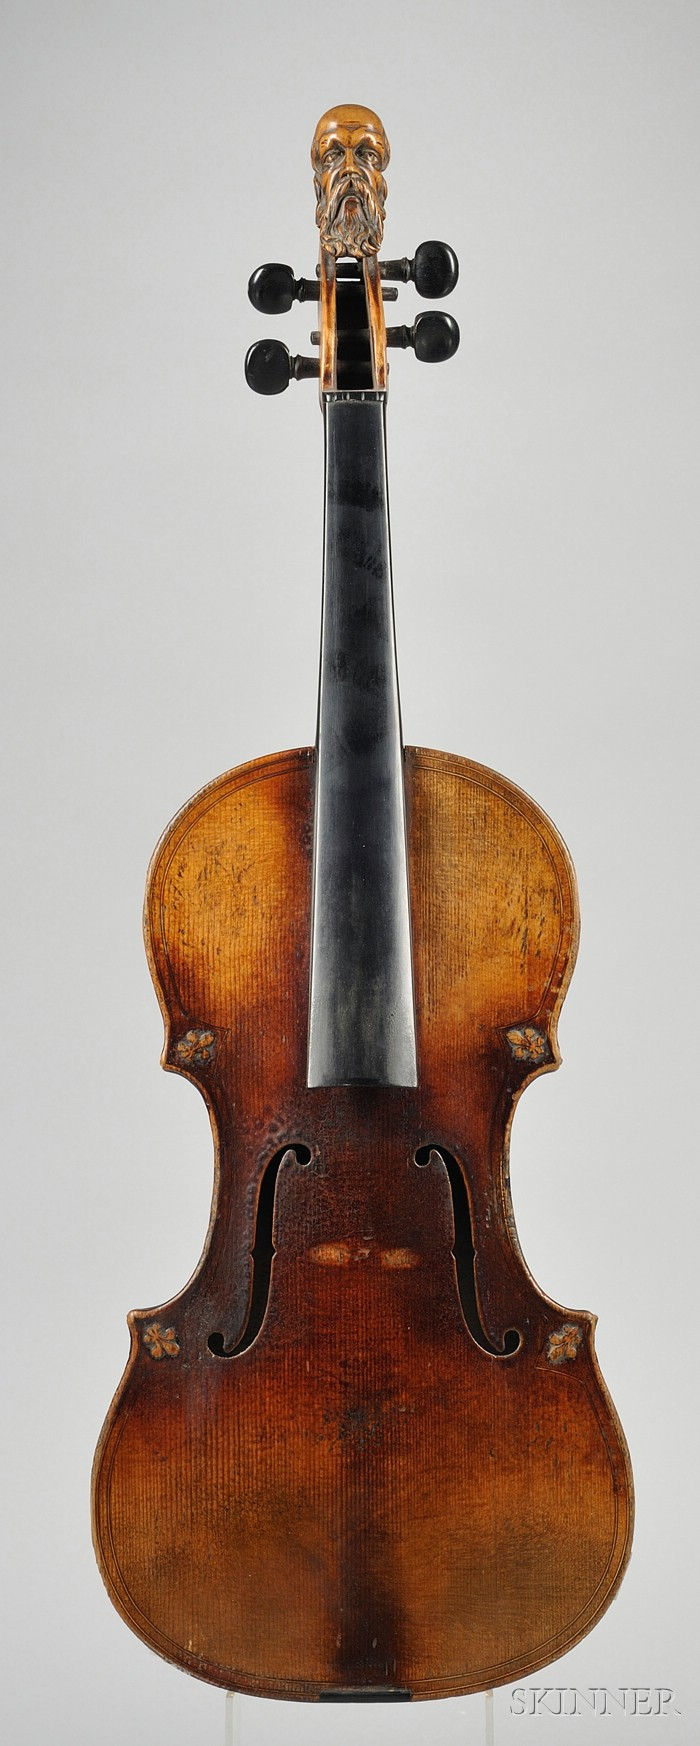 French Violin, Jean Baptiste Vuillaume, Paris, c. 1840